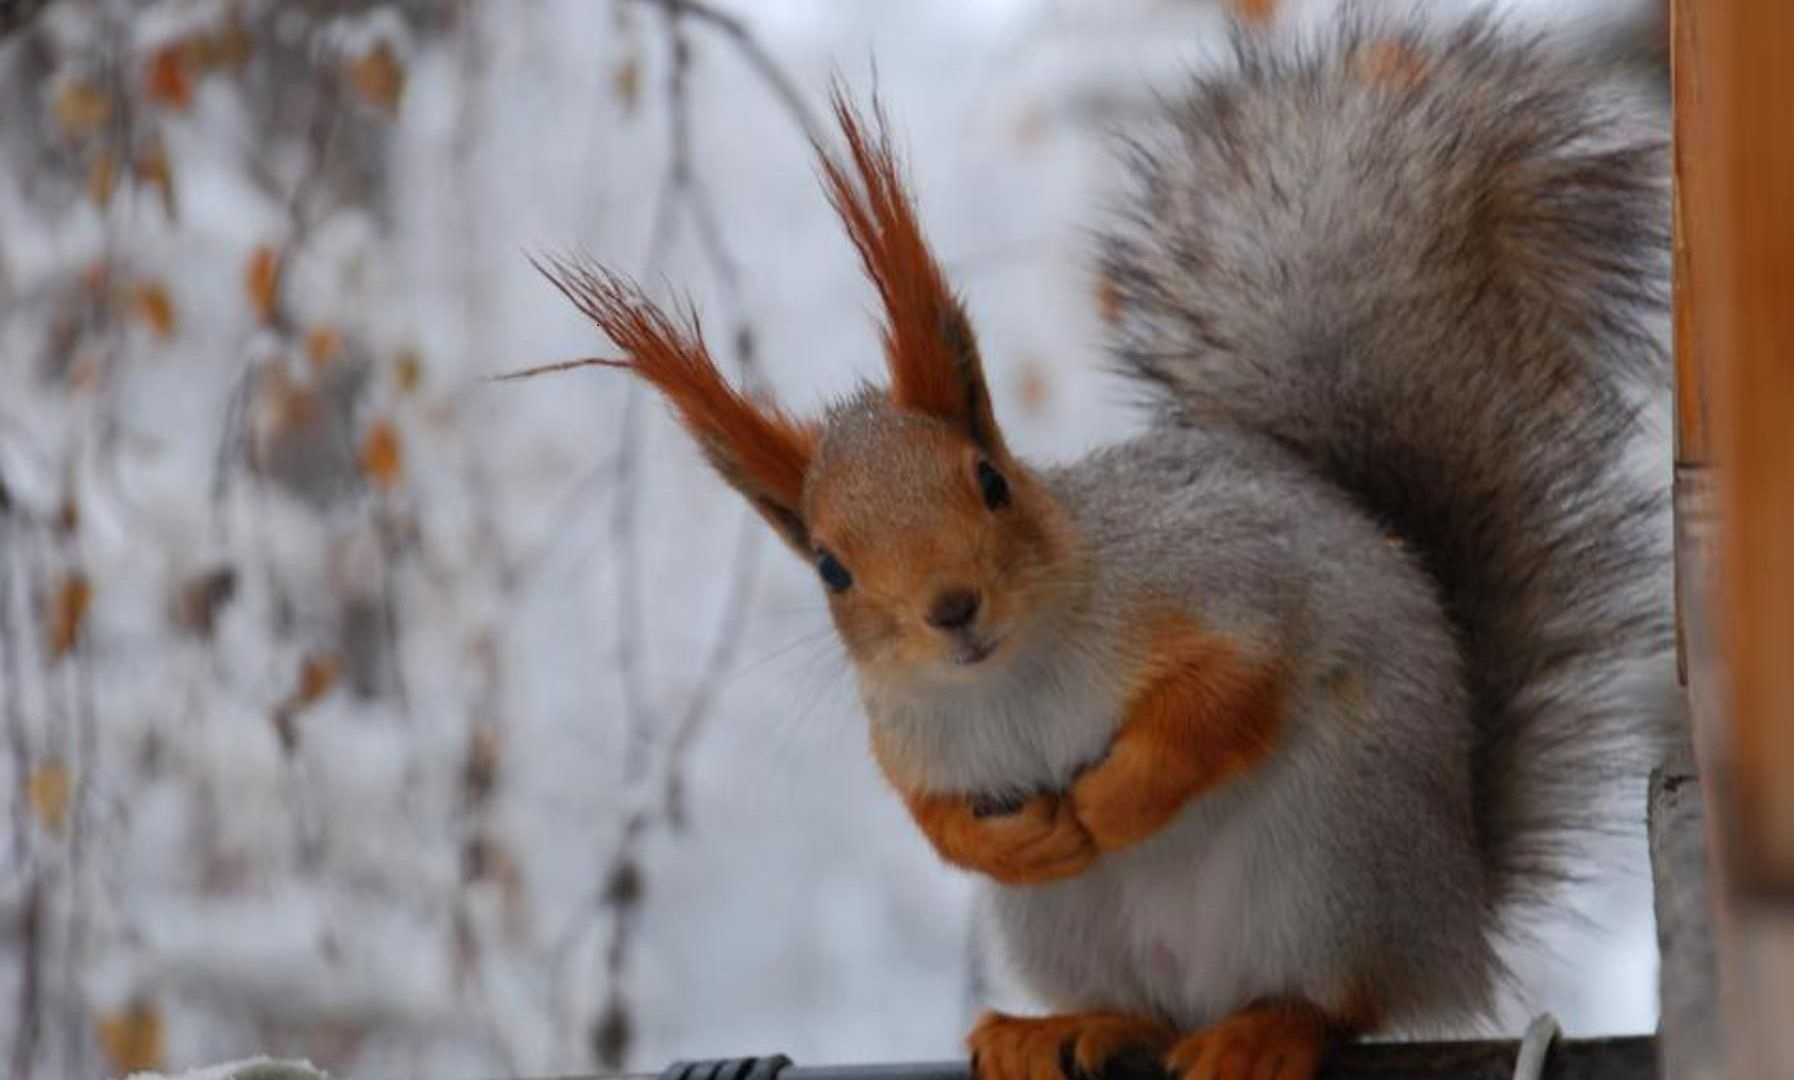 45 squirrel wallpaper themes on wallpapersafari - Funny squirrel backgrounds ...